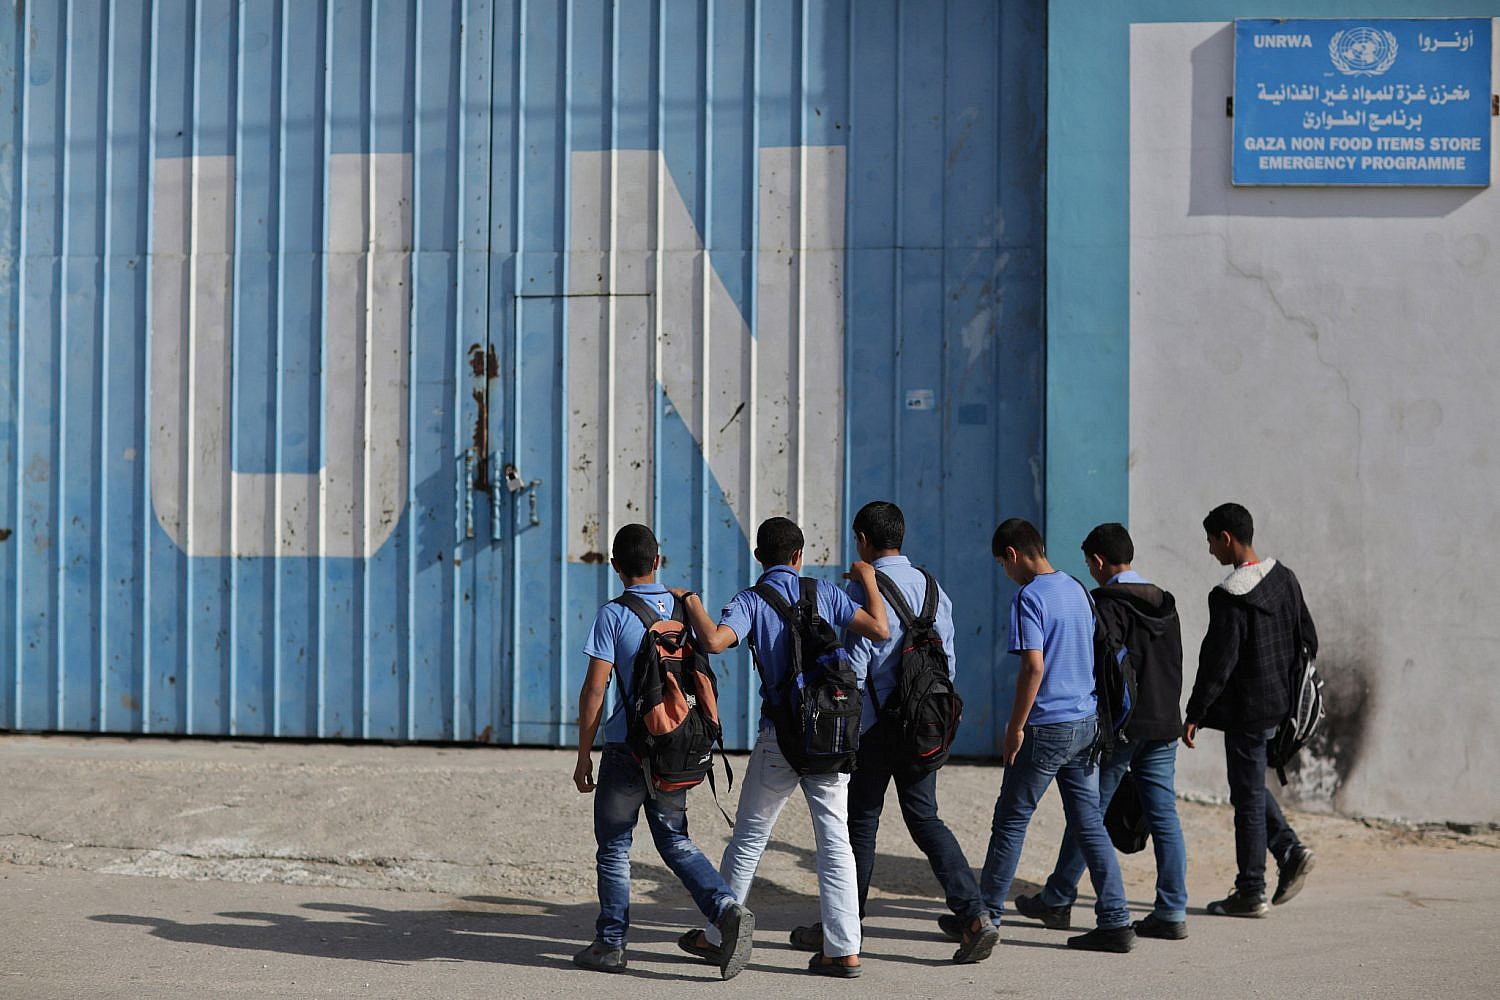 Palestinian students walk past a UN distribution center in the Jabaliya refugee camp in the northern Gaza Strip, April 6, 2013. (Wissam Nassar/Flash90)